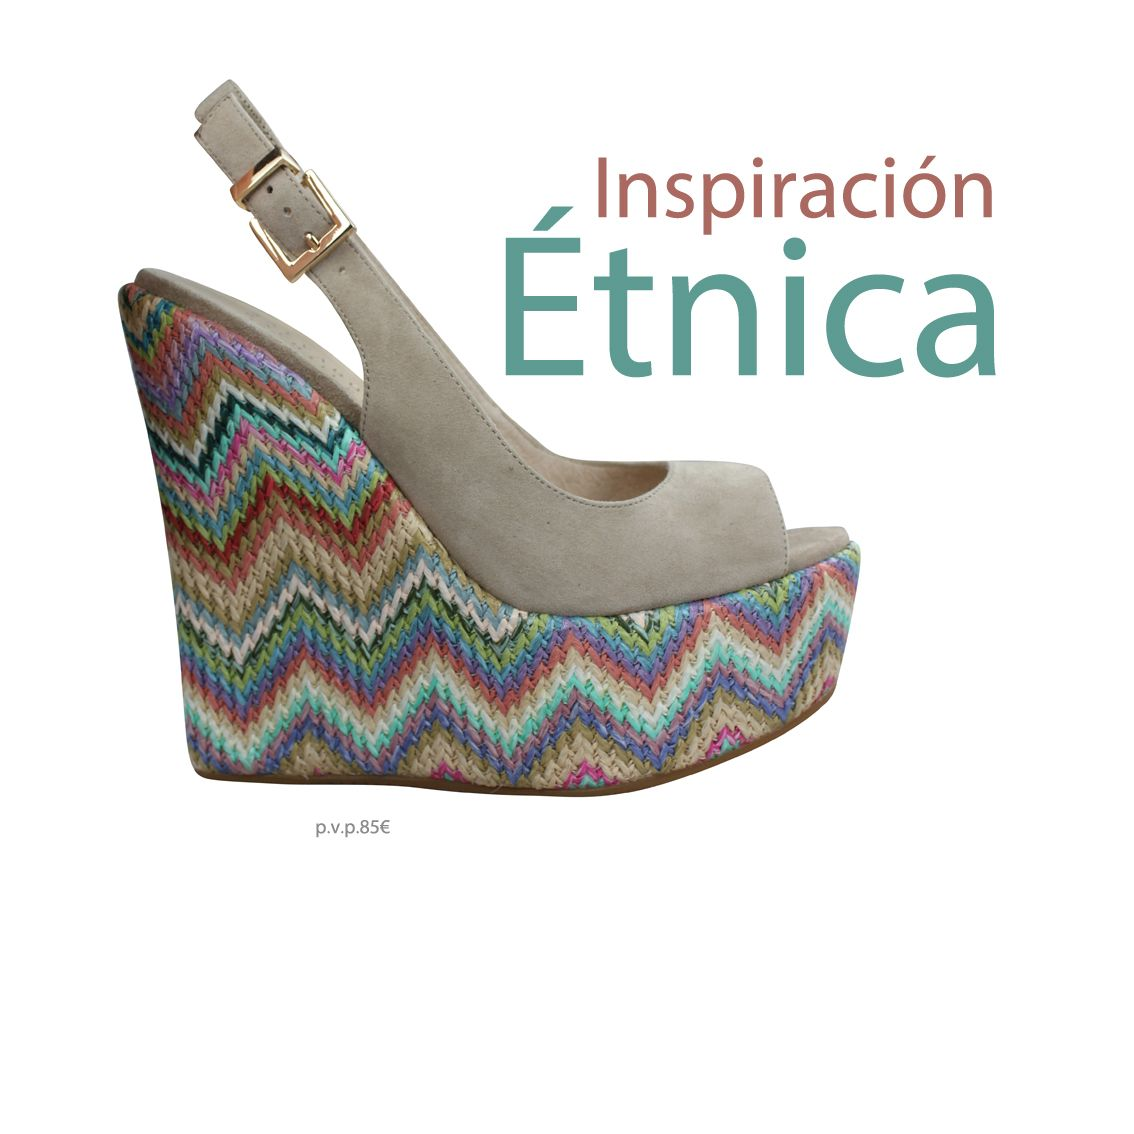 #shoes #sandalias #especial #etnicas #style #instfashion #inspiration #instamood #musthave #trivial #newcollection #salvadorbachiller #girls #spring